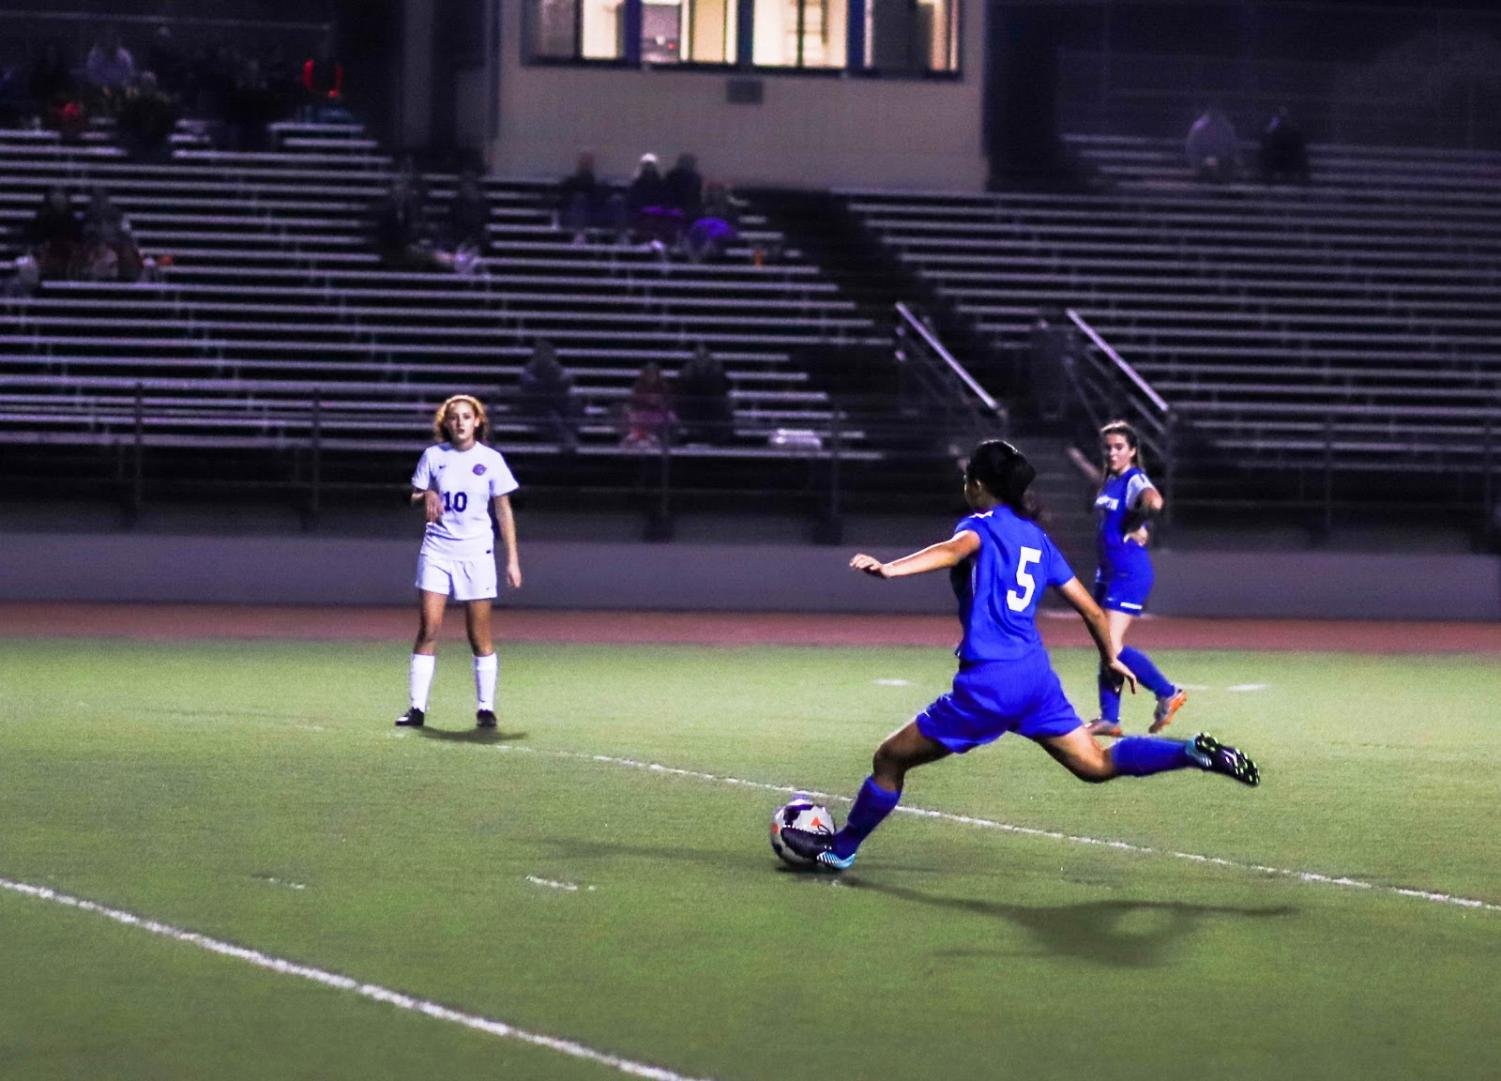 Gabriella del Rosario (11) makes a huge stride as she scores the second goal for Irvington